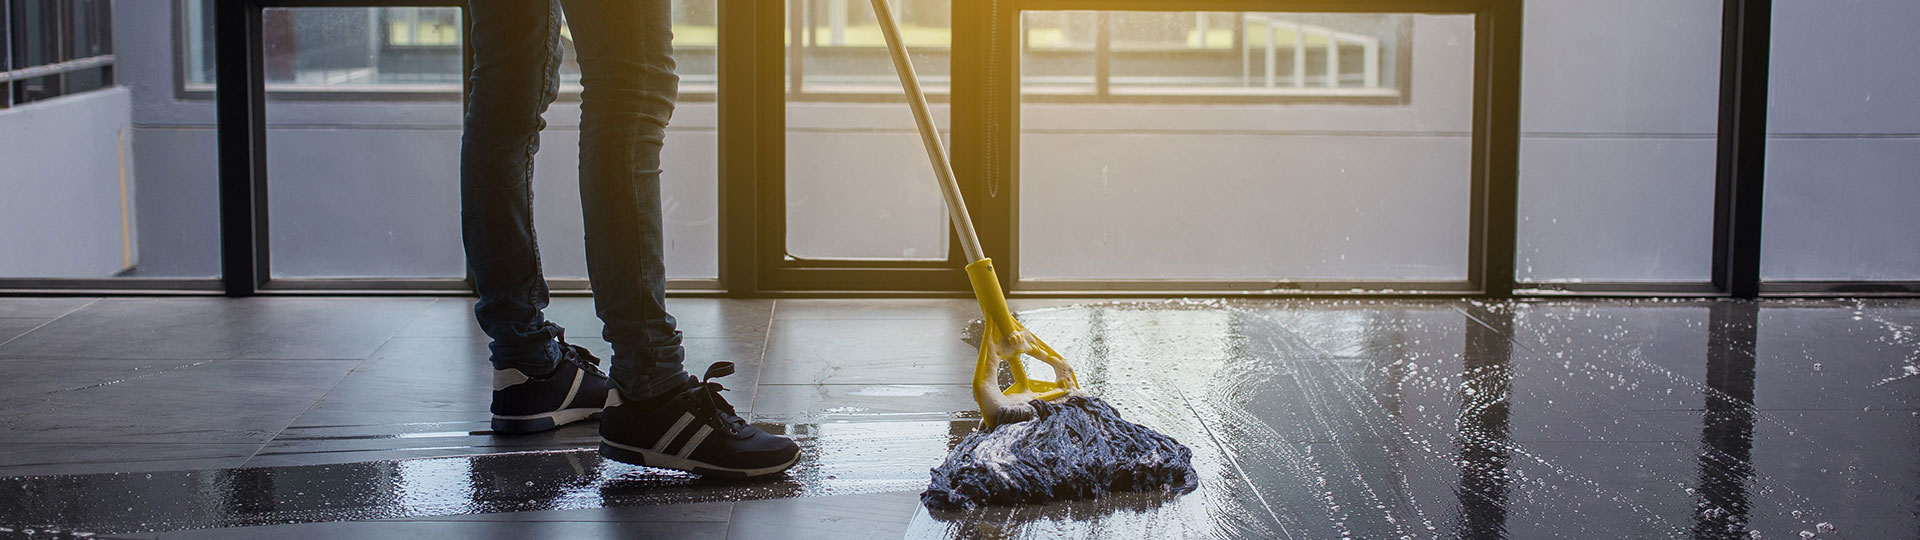 Chemical Cleaning by Cash-Wa Distributing, Kearney